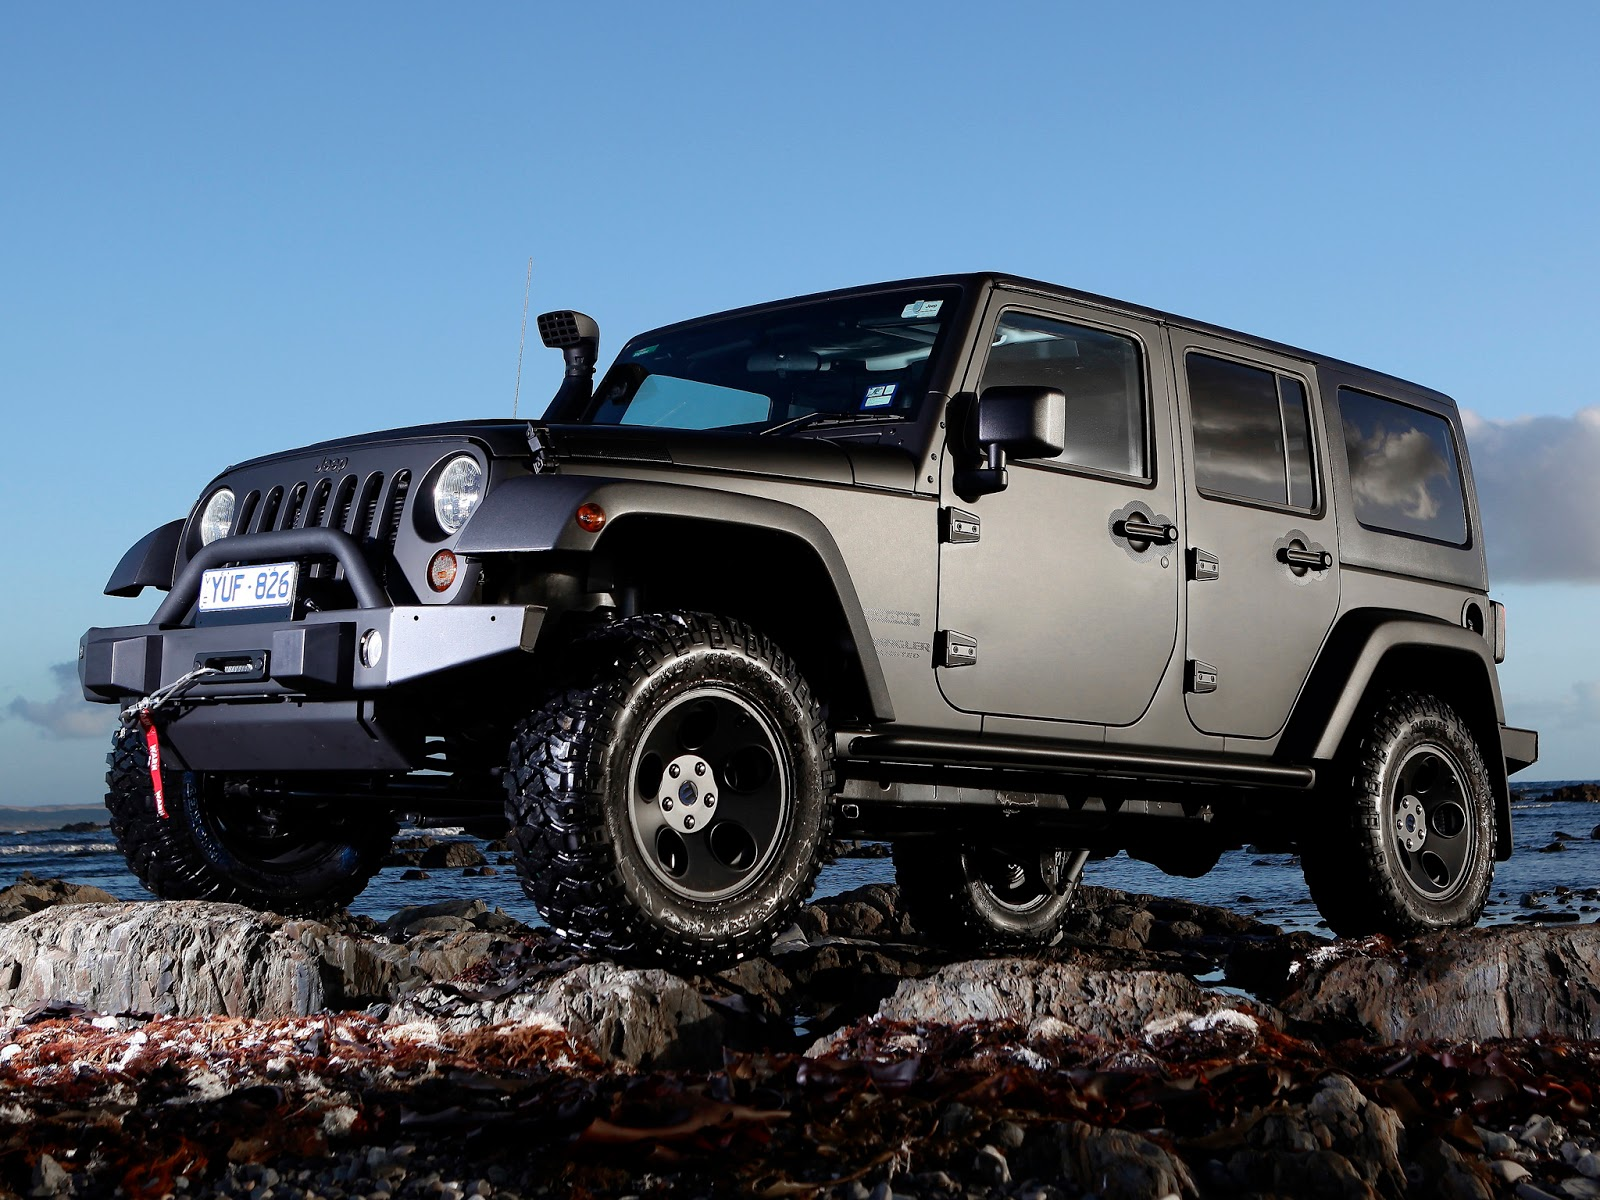 The Jeep Wrangler Is A Sporty Vehicle That Every Adventurous Person Would Want To With Comfortable Ride It Provides Experience Makes